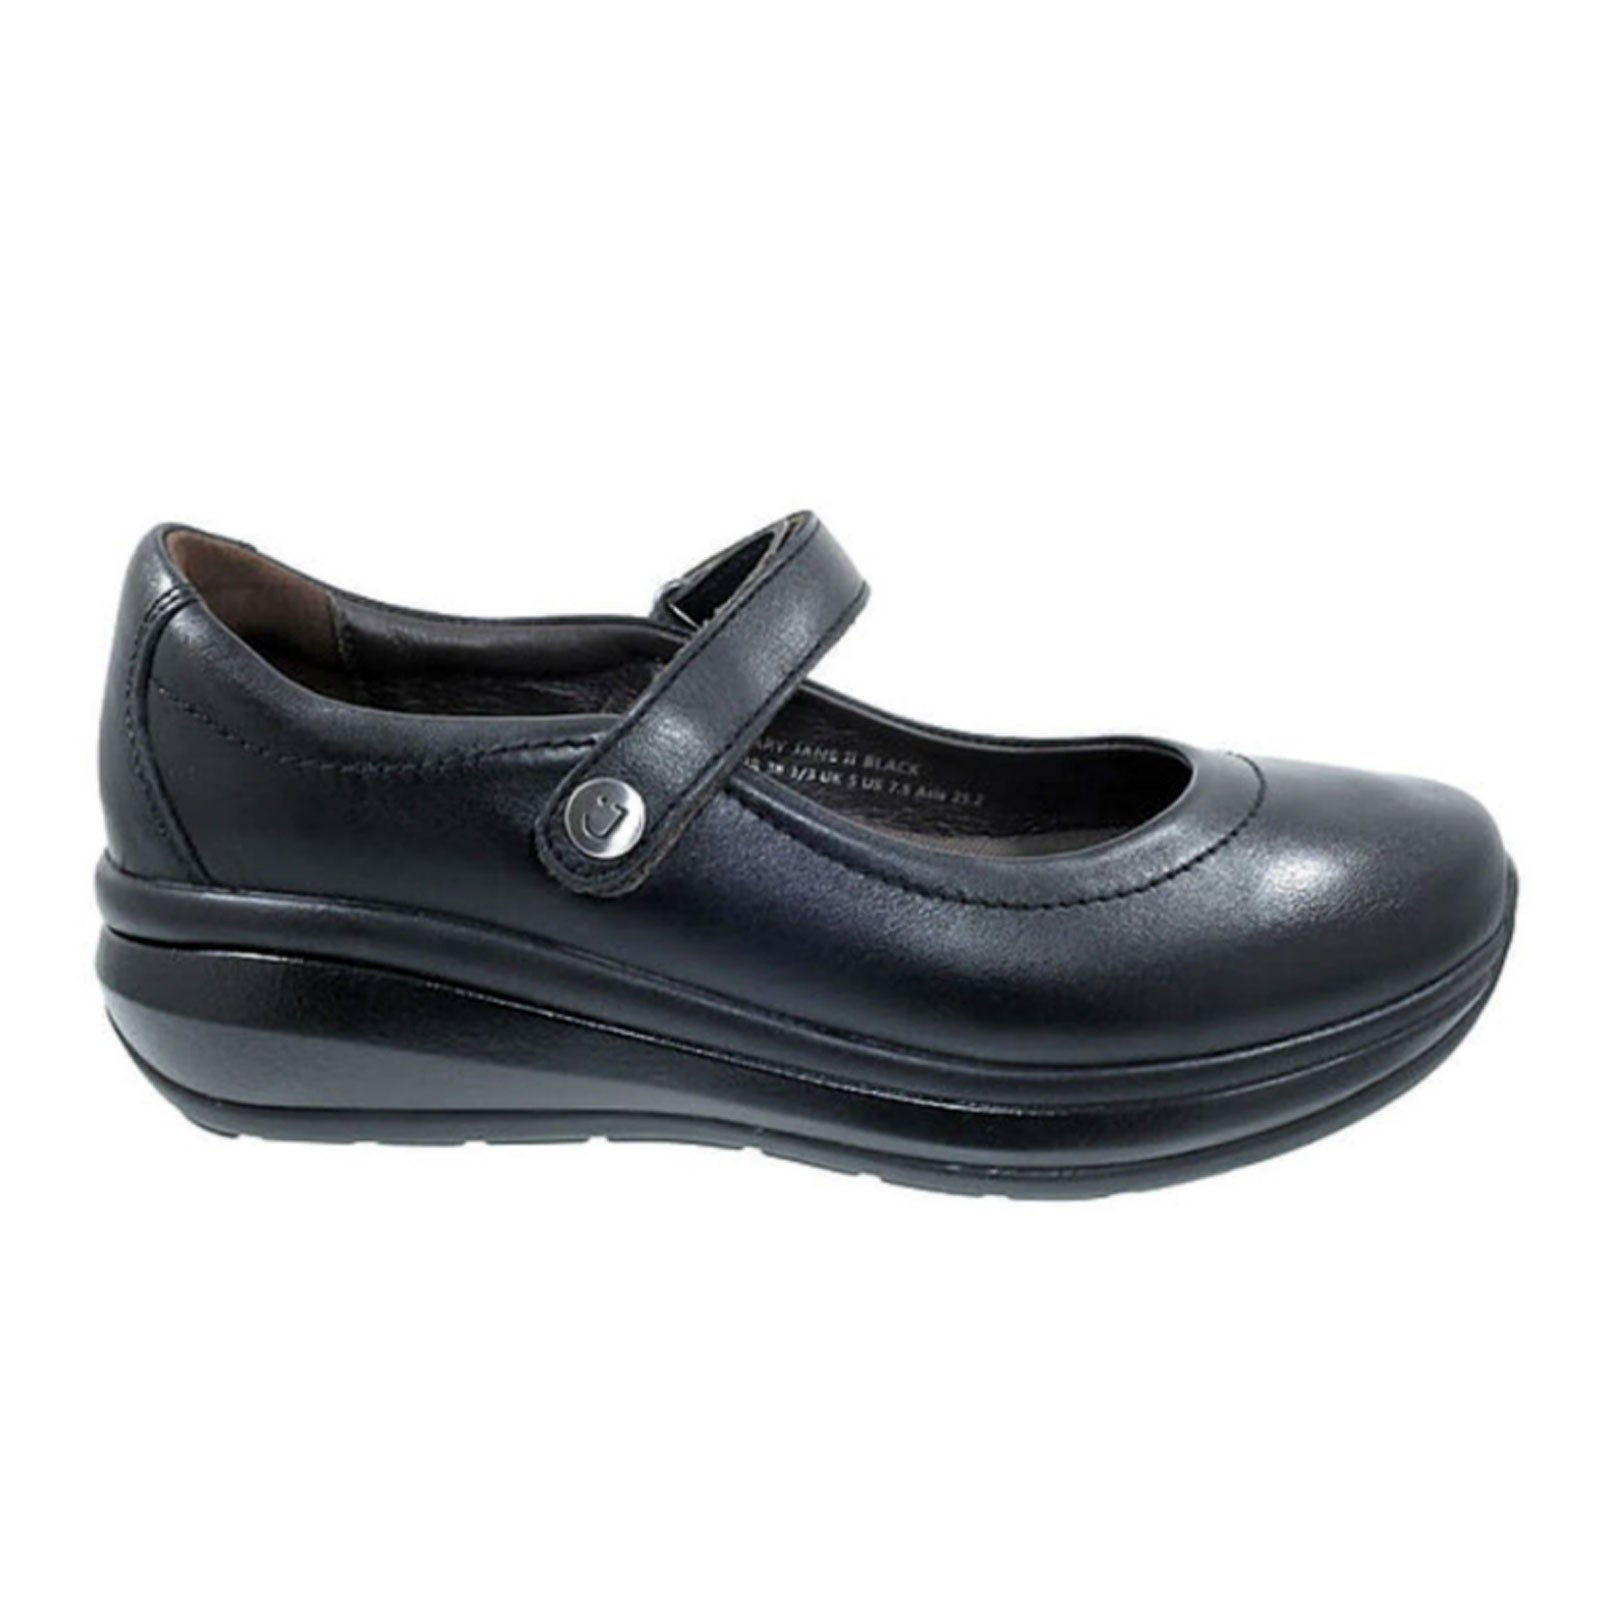 Joya Mary Jane II (Women) - Black Dress/Casual|Lace Ups - The Heel Shoe Fitters